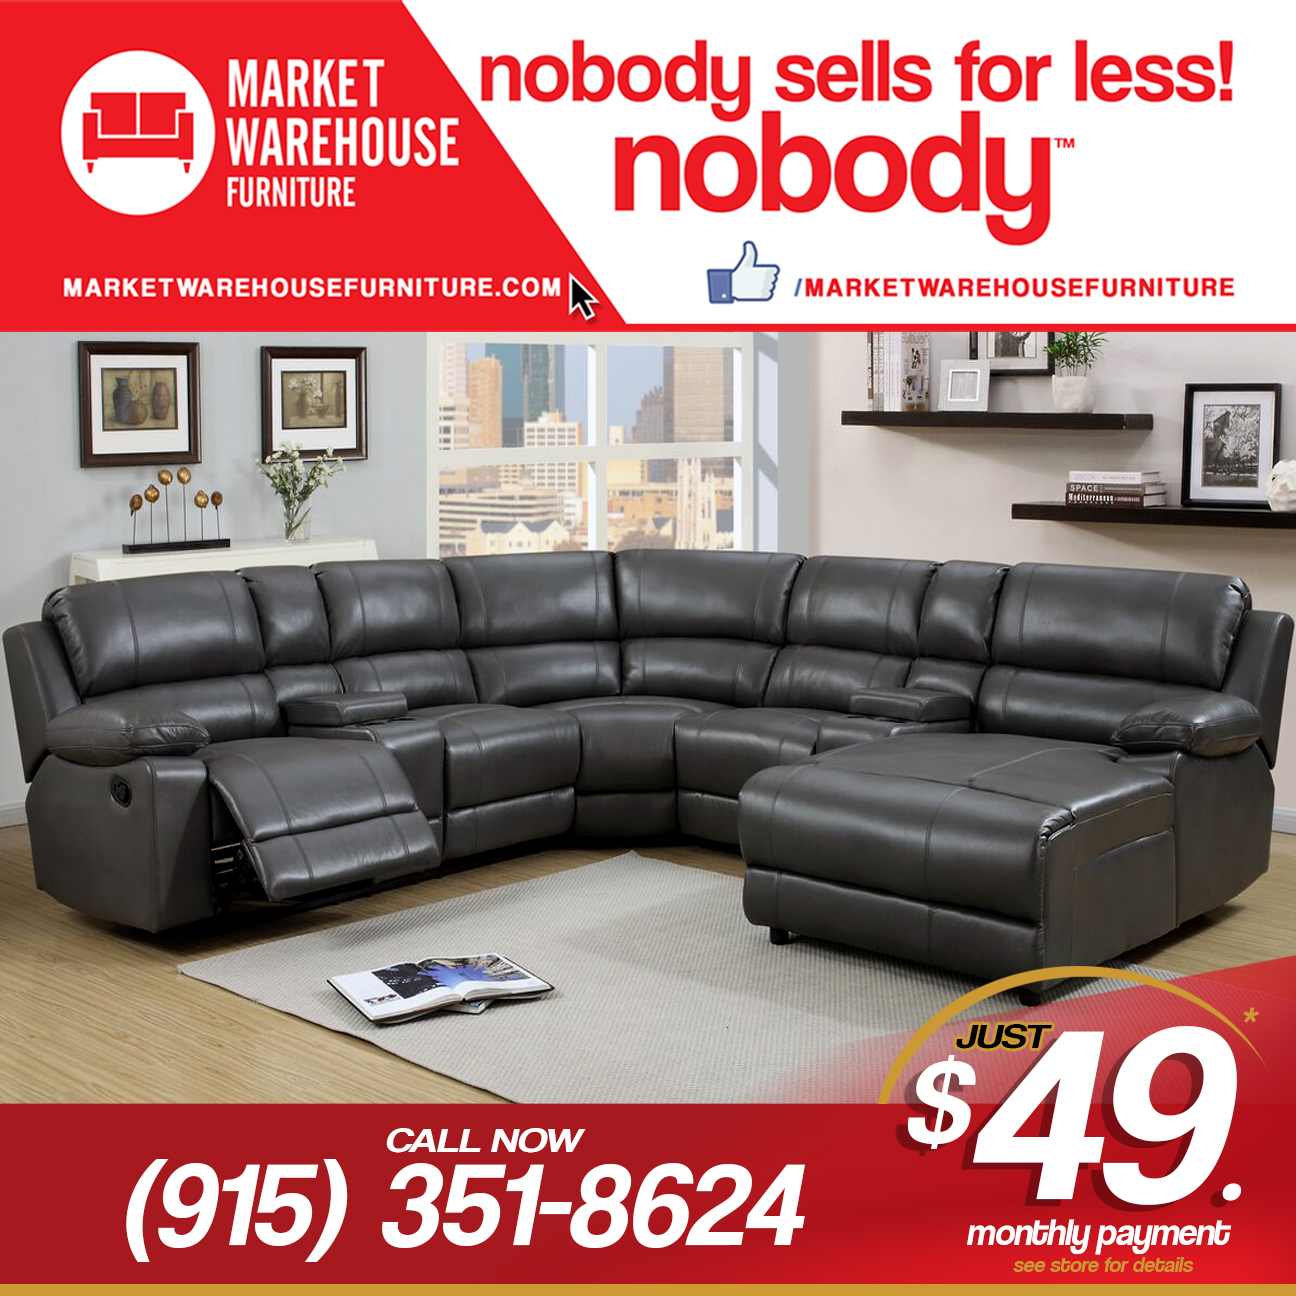 Market Warehouse Furniture 6995 Market Ave El Paso Tx 79915 Yp Com